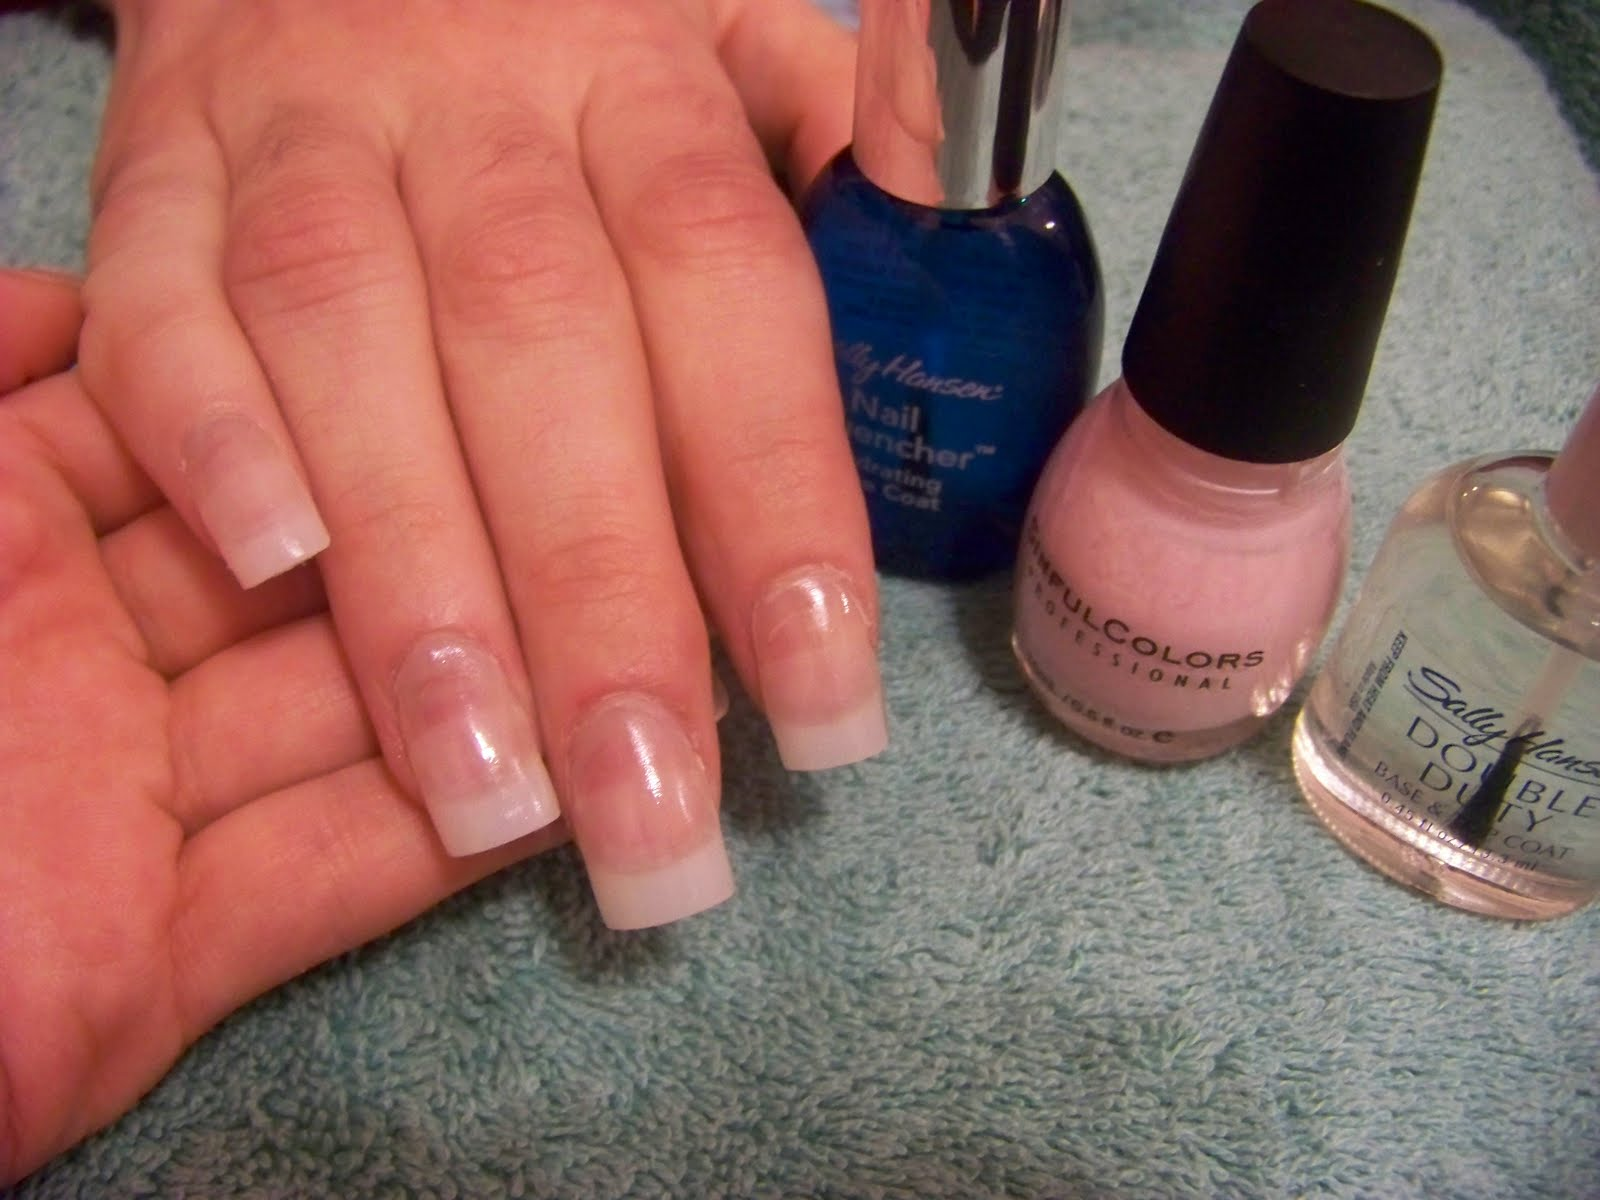 Chloe Beauty NYC: Tutorial : Acrylic Nail Tips!